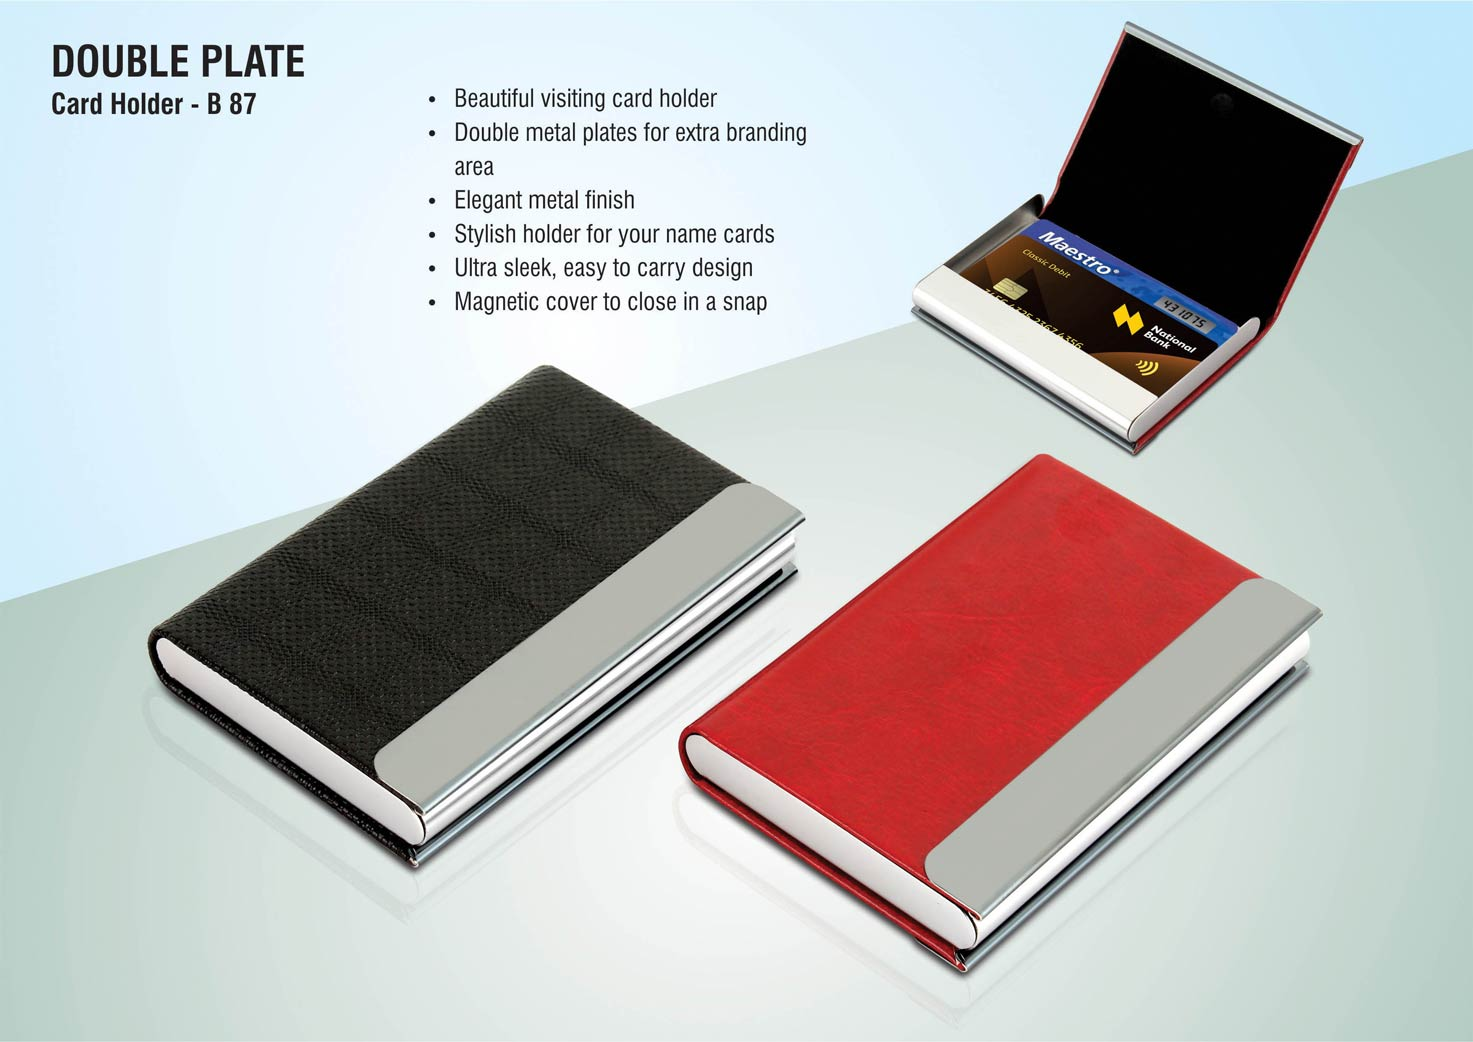 B87 - Double plate card holder